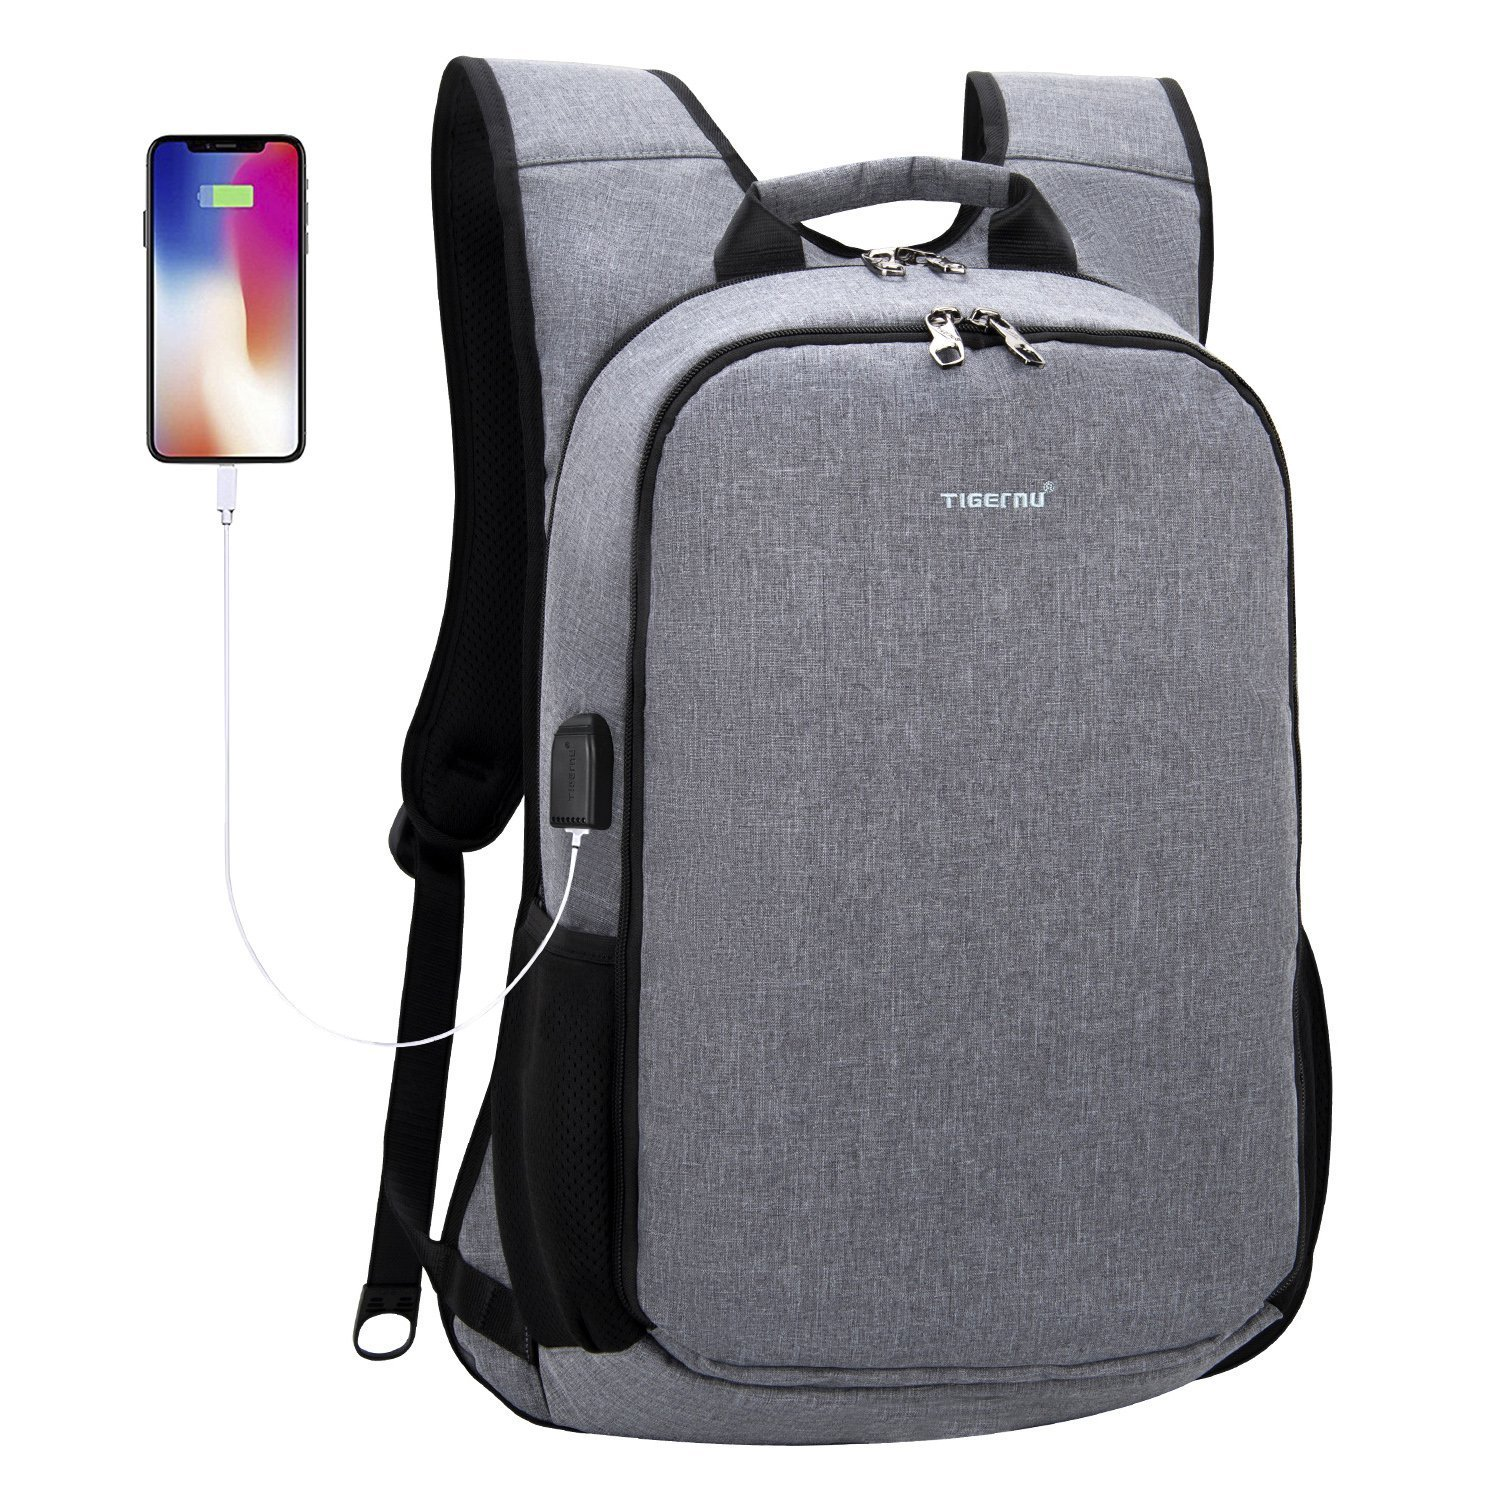 b3b0122a48 Amazon.com  TIGERNU Laptop Backpack for 15.6 17 Inch Laptops Notebook with  Shockproof Pad XL Extra Large Big Business Travel Backpack with USB  Charging ...